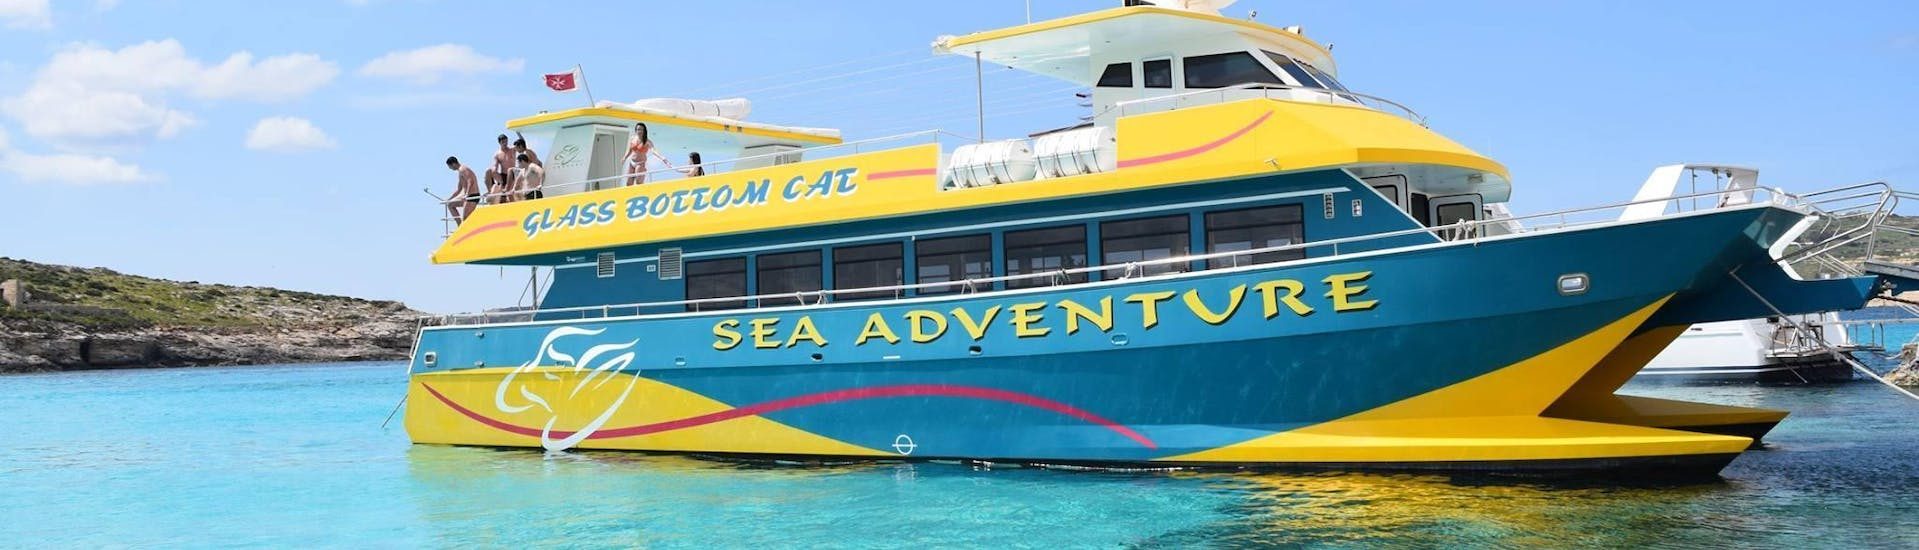 Holidaymakers are enjoying the view during their catamaran tour organised by Sea Adventure Excursions.